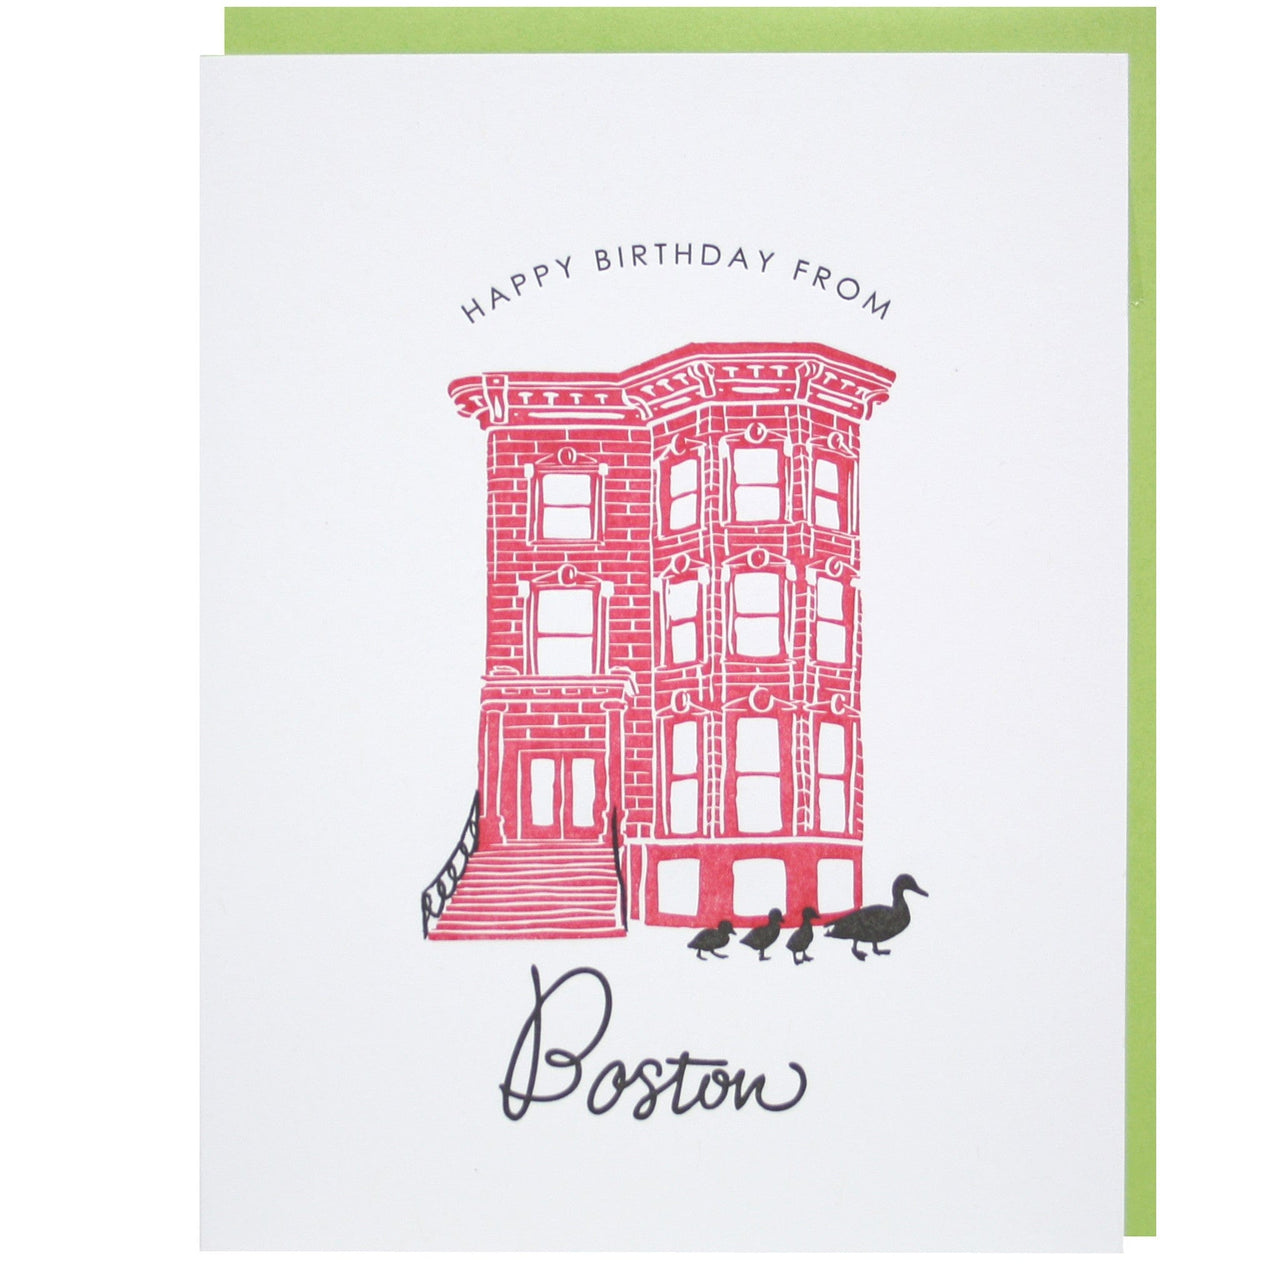 Happy Birthday from Boston Card